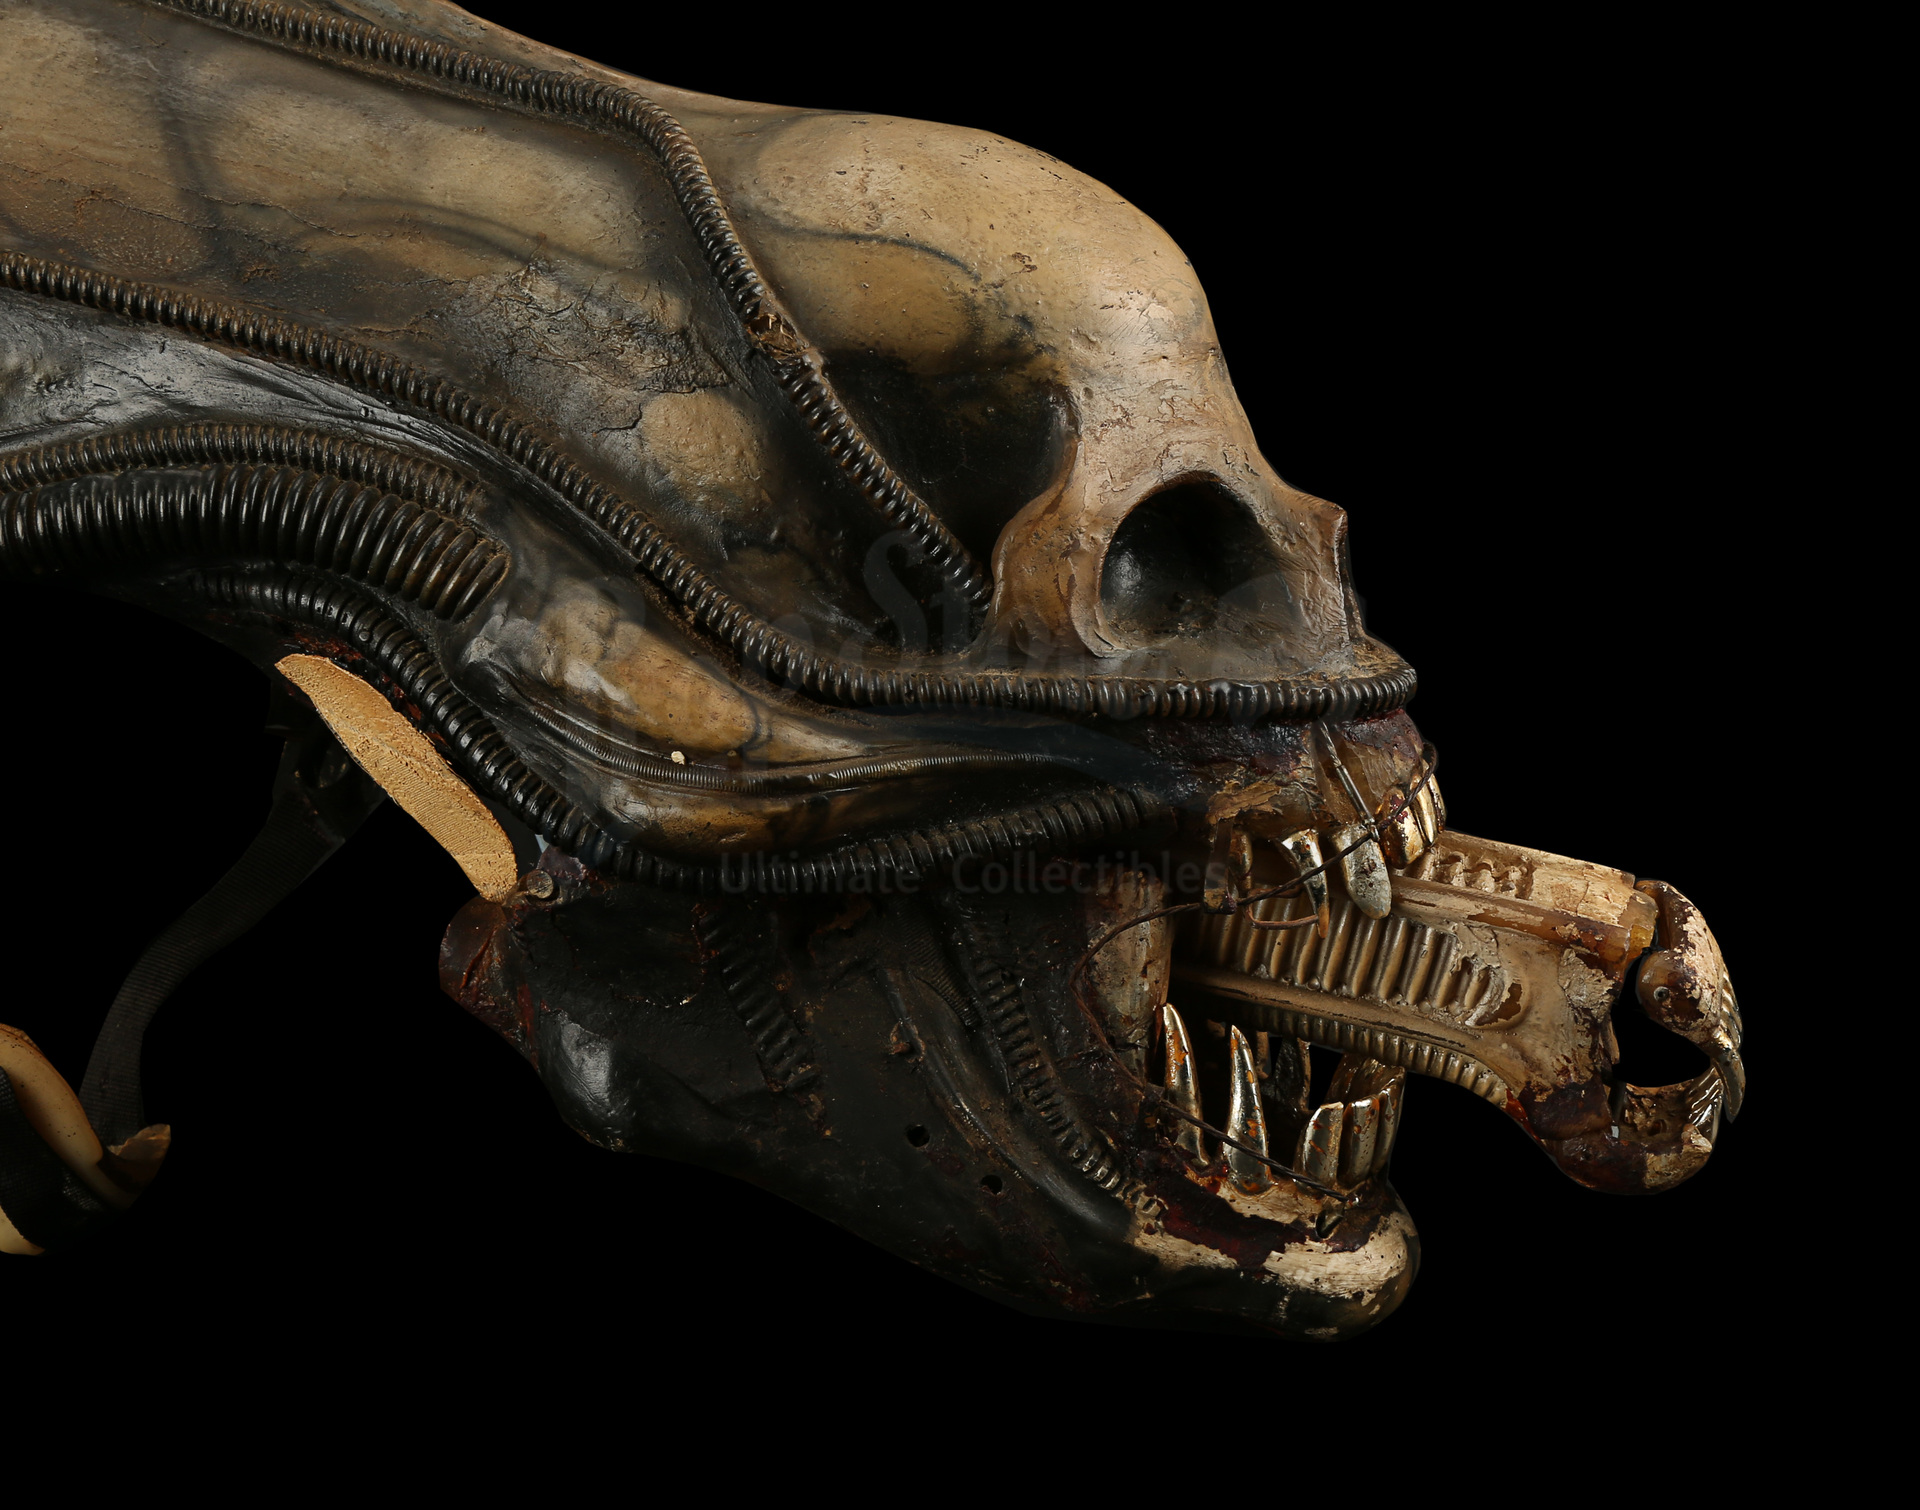 ALIEN (1979) - H.R. Giger-designed Special Effects Mechanical Alien Head - Image 2 of 34